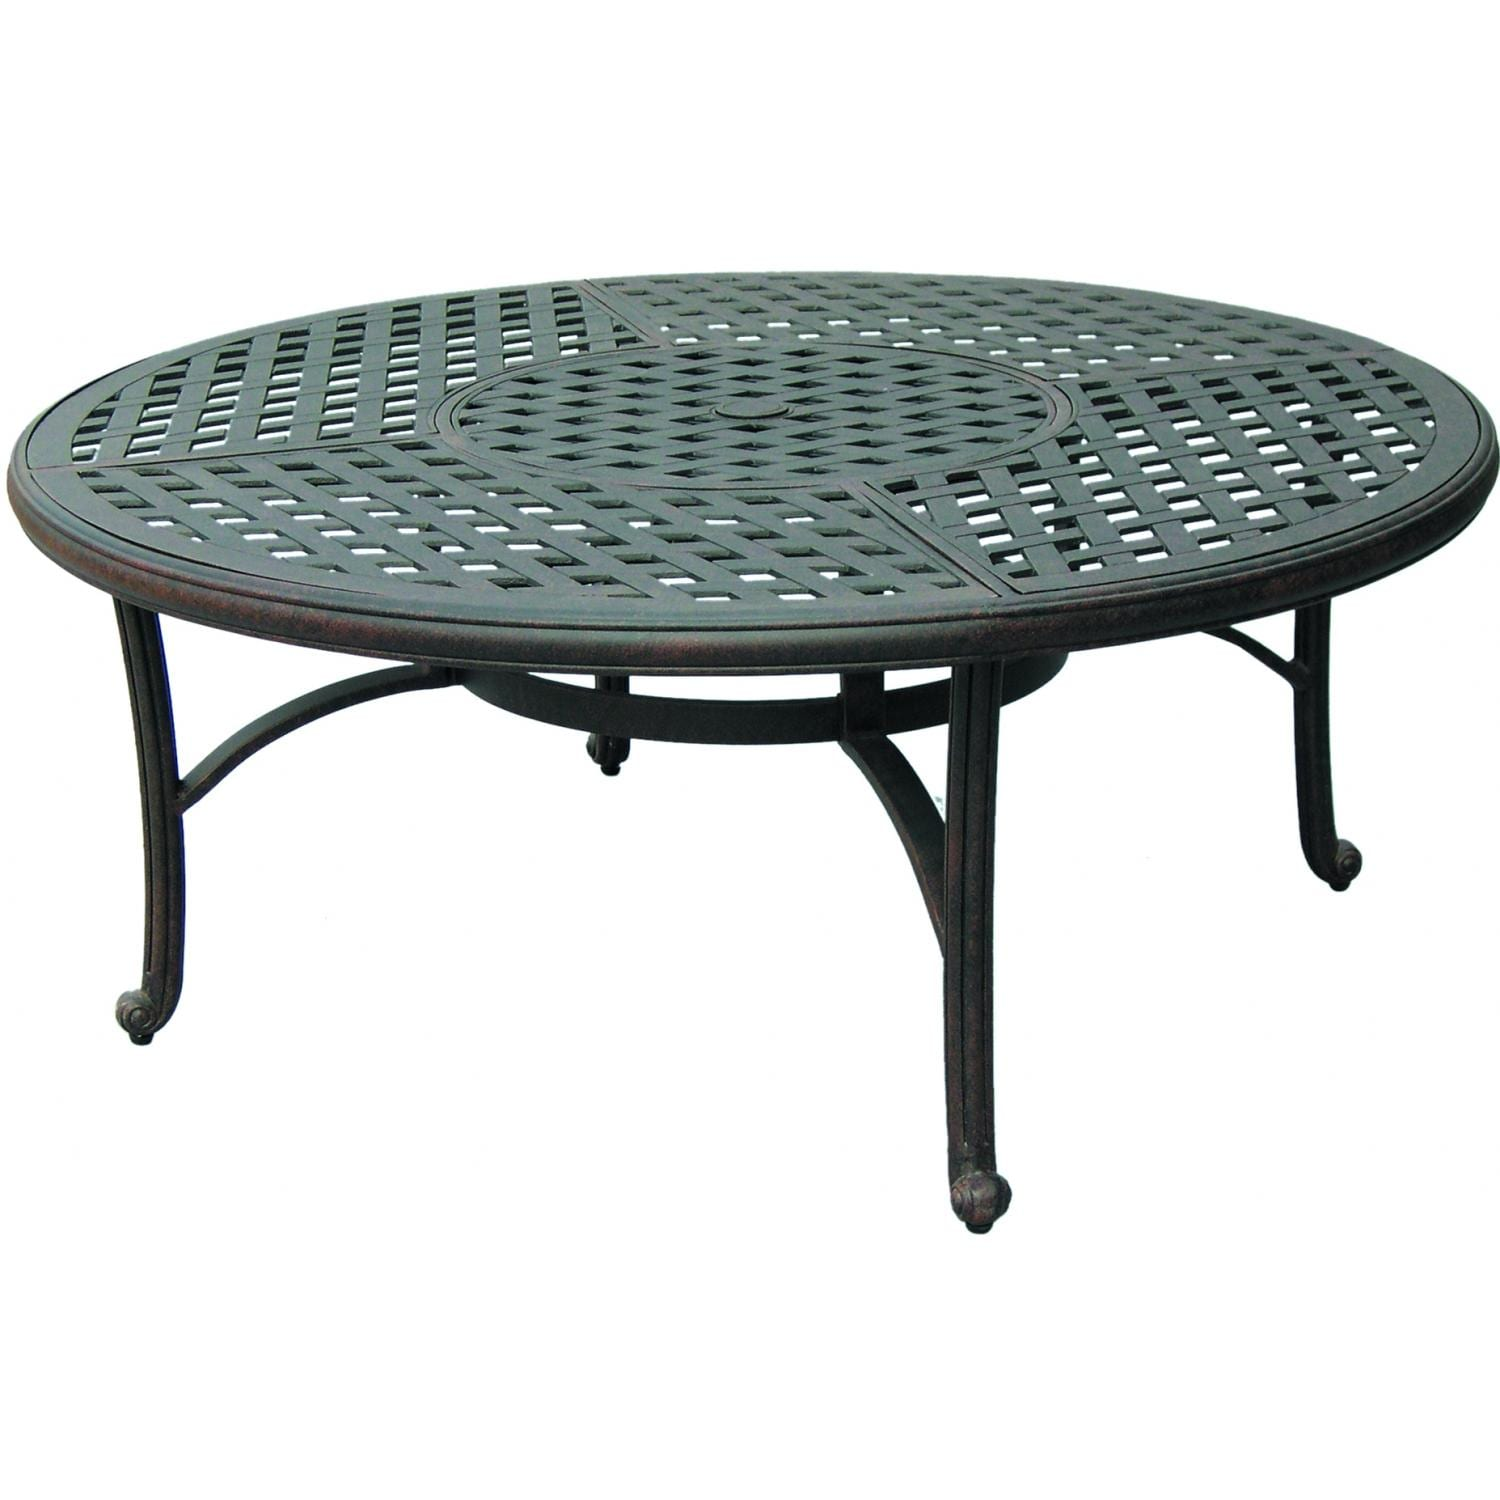 Darlee Series 30 52-Inch Cast Aluminum Patio Chat Table